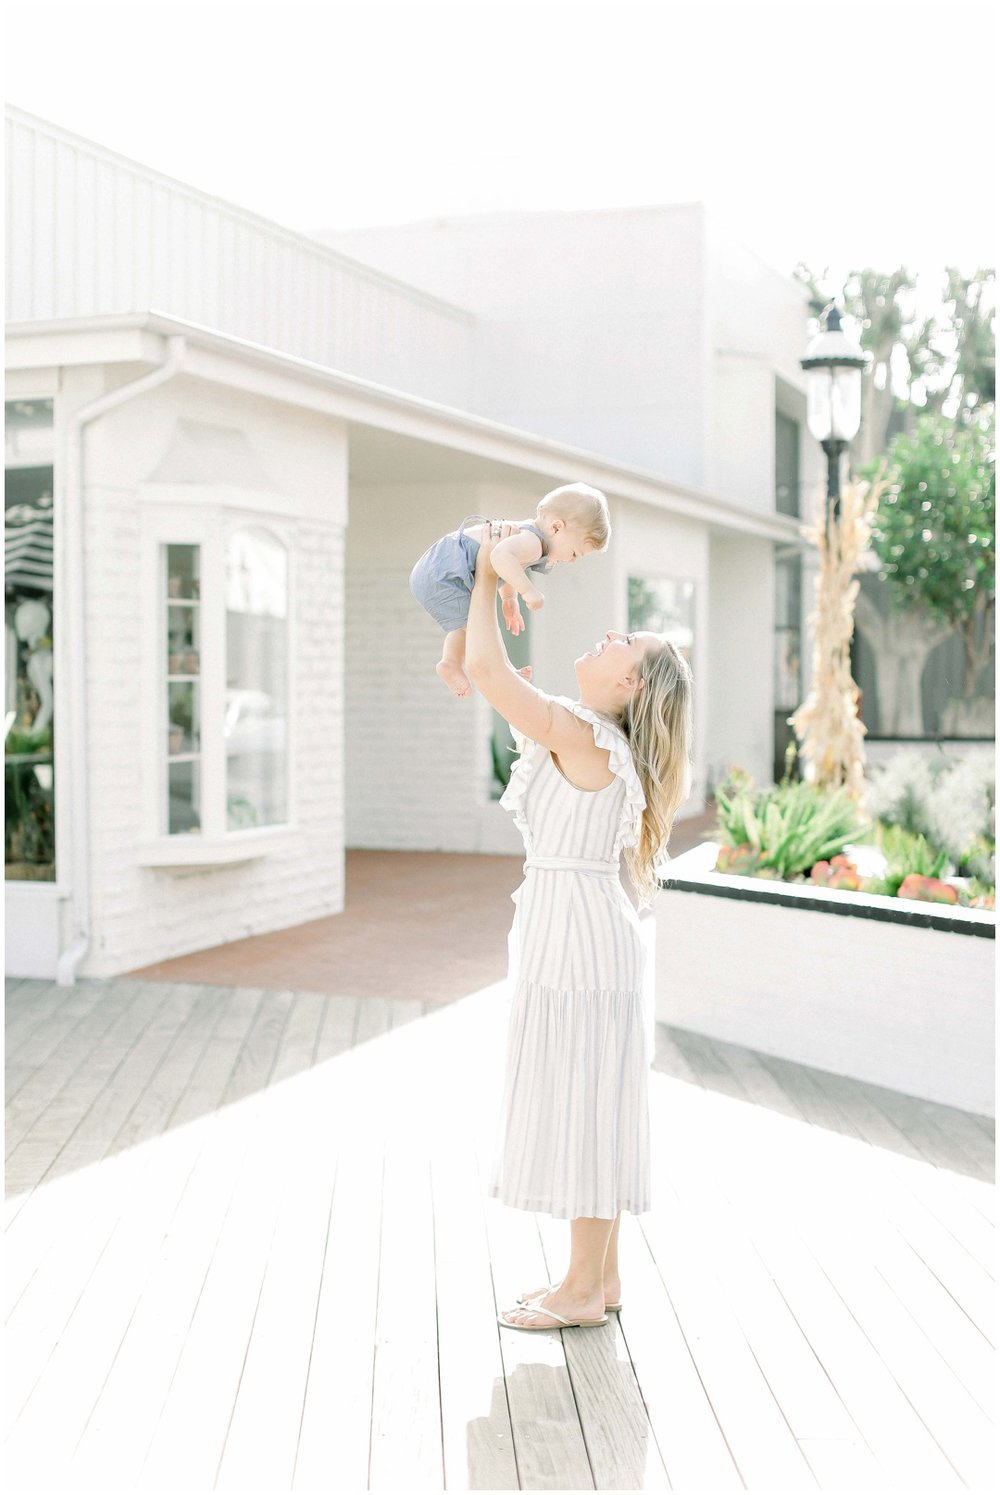 Lido_Marina_Village_Session_Photographer_Newport_Beach_Family_Photographer_Newport_Beach_Newborn_Photographer_Orange_County_Family_Photographer_Cori_Kleckner_Photography_Huntington_Beach_Photographer_Lara_Langford_Family_Session_2664.jpg